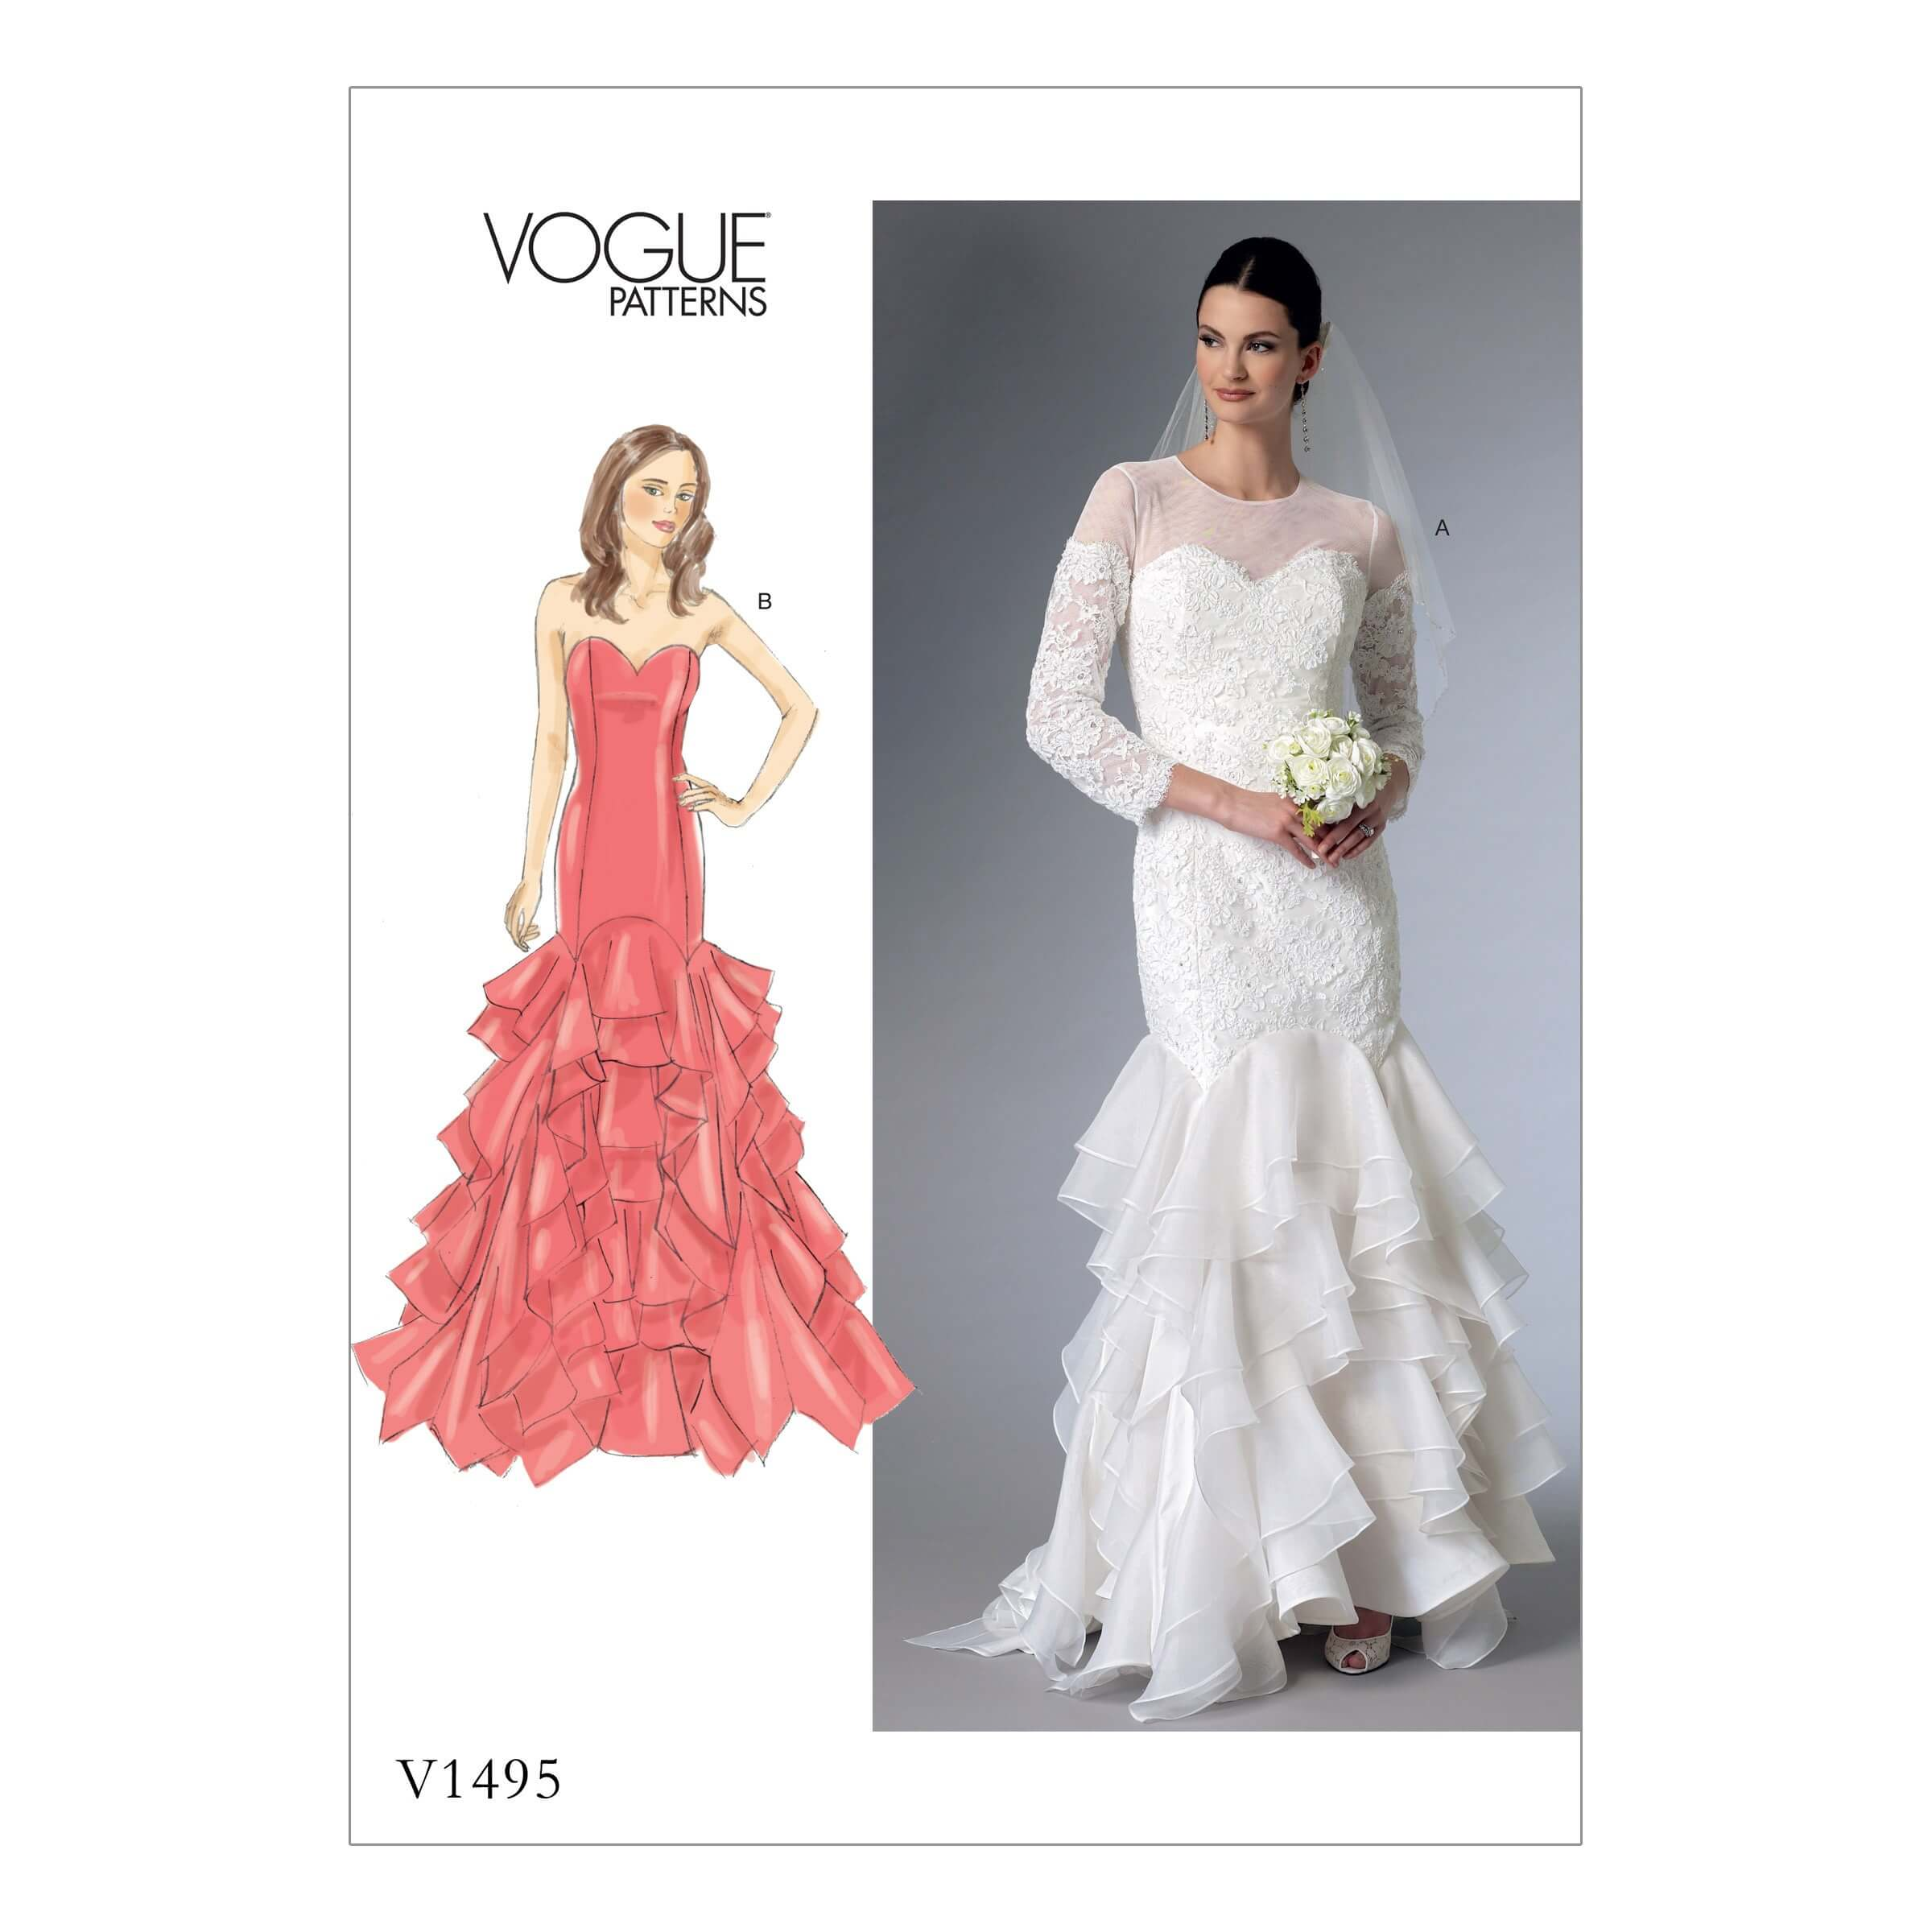 Vogue Sewing Pattern V1495 Women's Sweatheart Gown Dress with Flounce Skirt